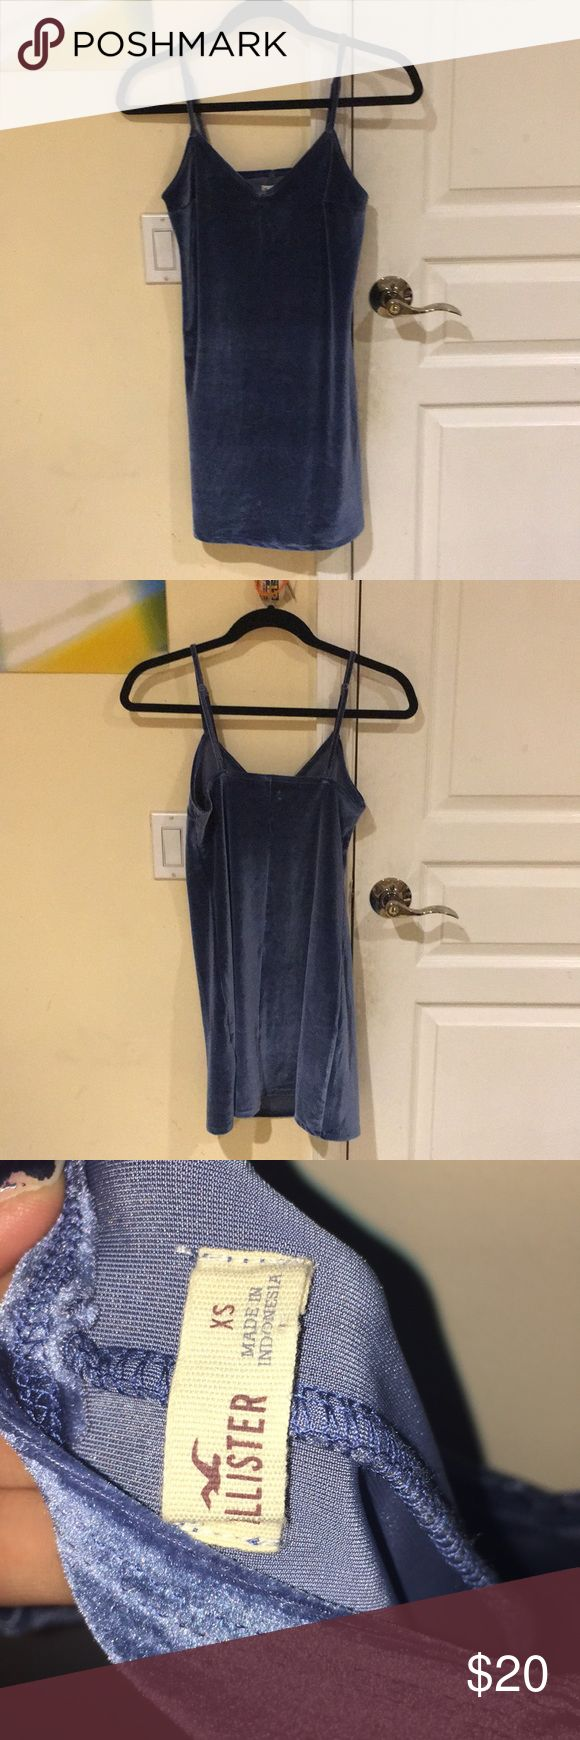 Barely worn velvet Hollister dress XS Barely worn blue velvet dress. Really cute to wear with sheer stockings and heels! ‼️25% off on bundles 2+‼️ Hollister Dresses Mini